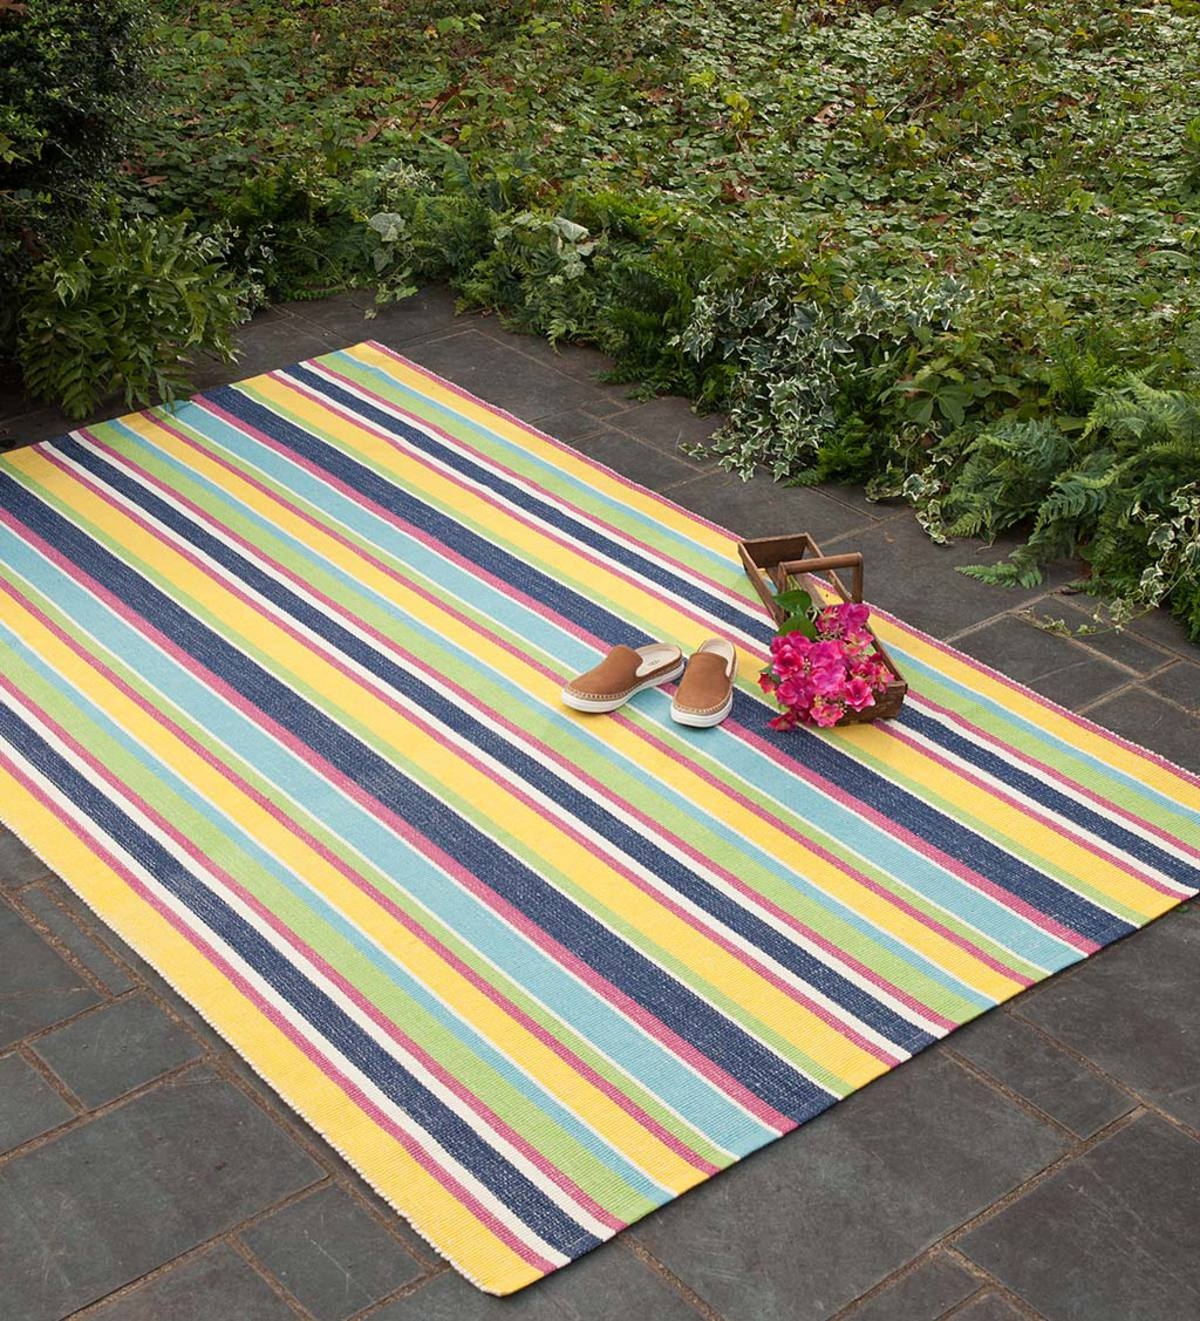 Indoor/Outdoor Summer Stripe Rug, 3' x 5' - Multi